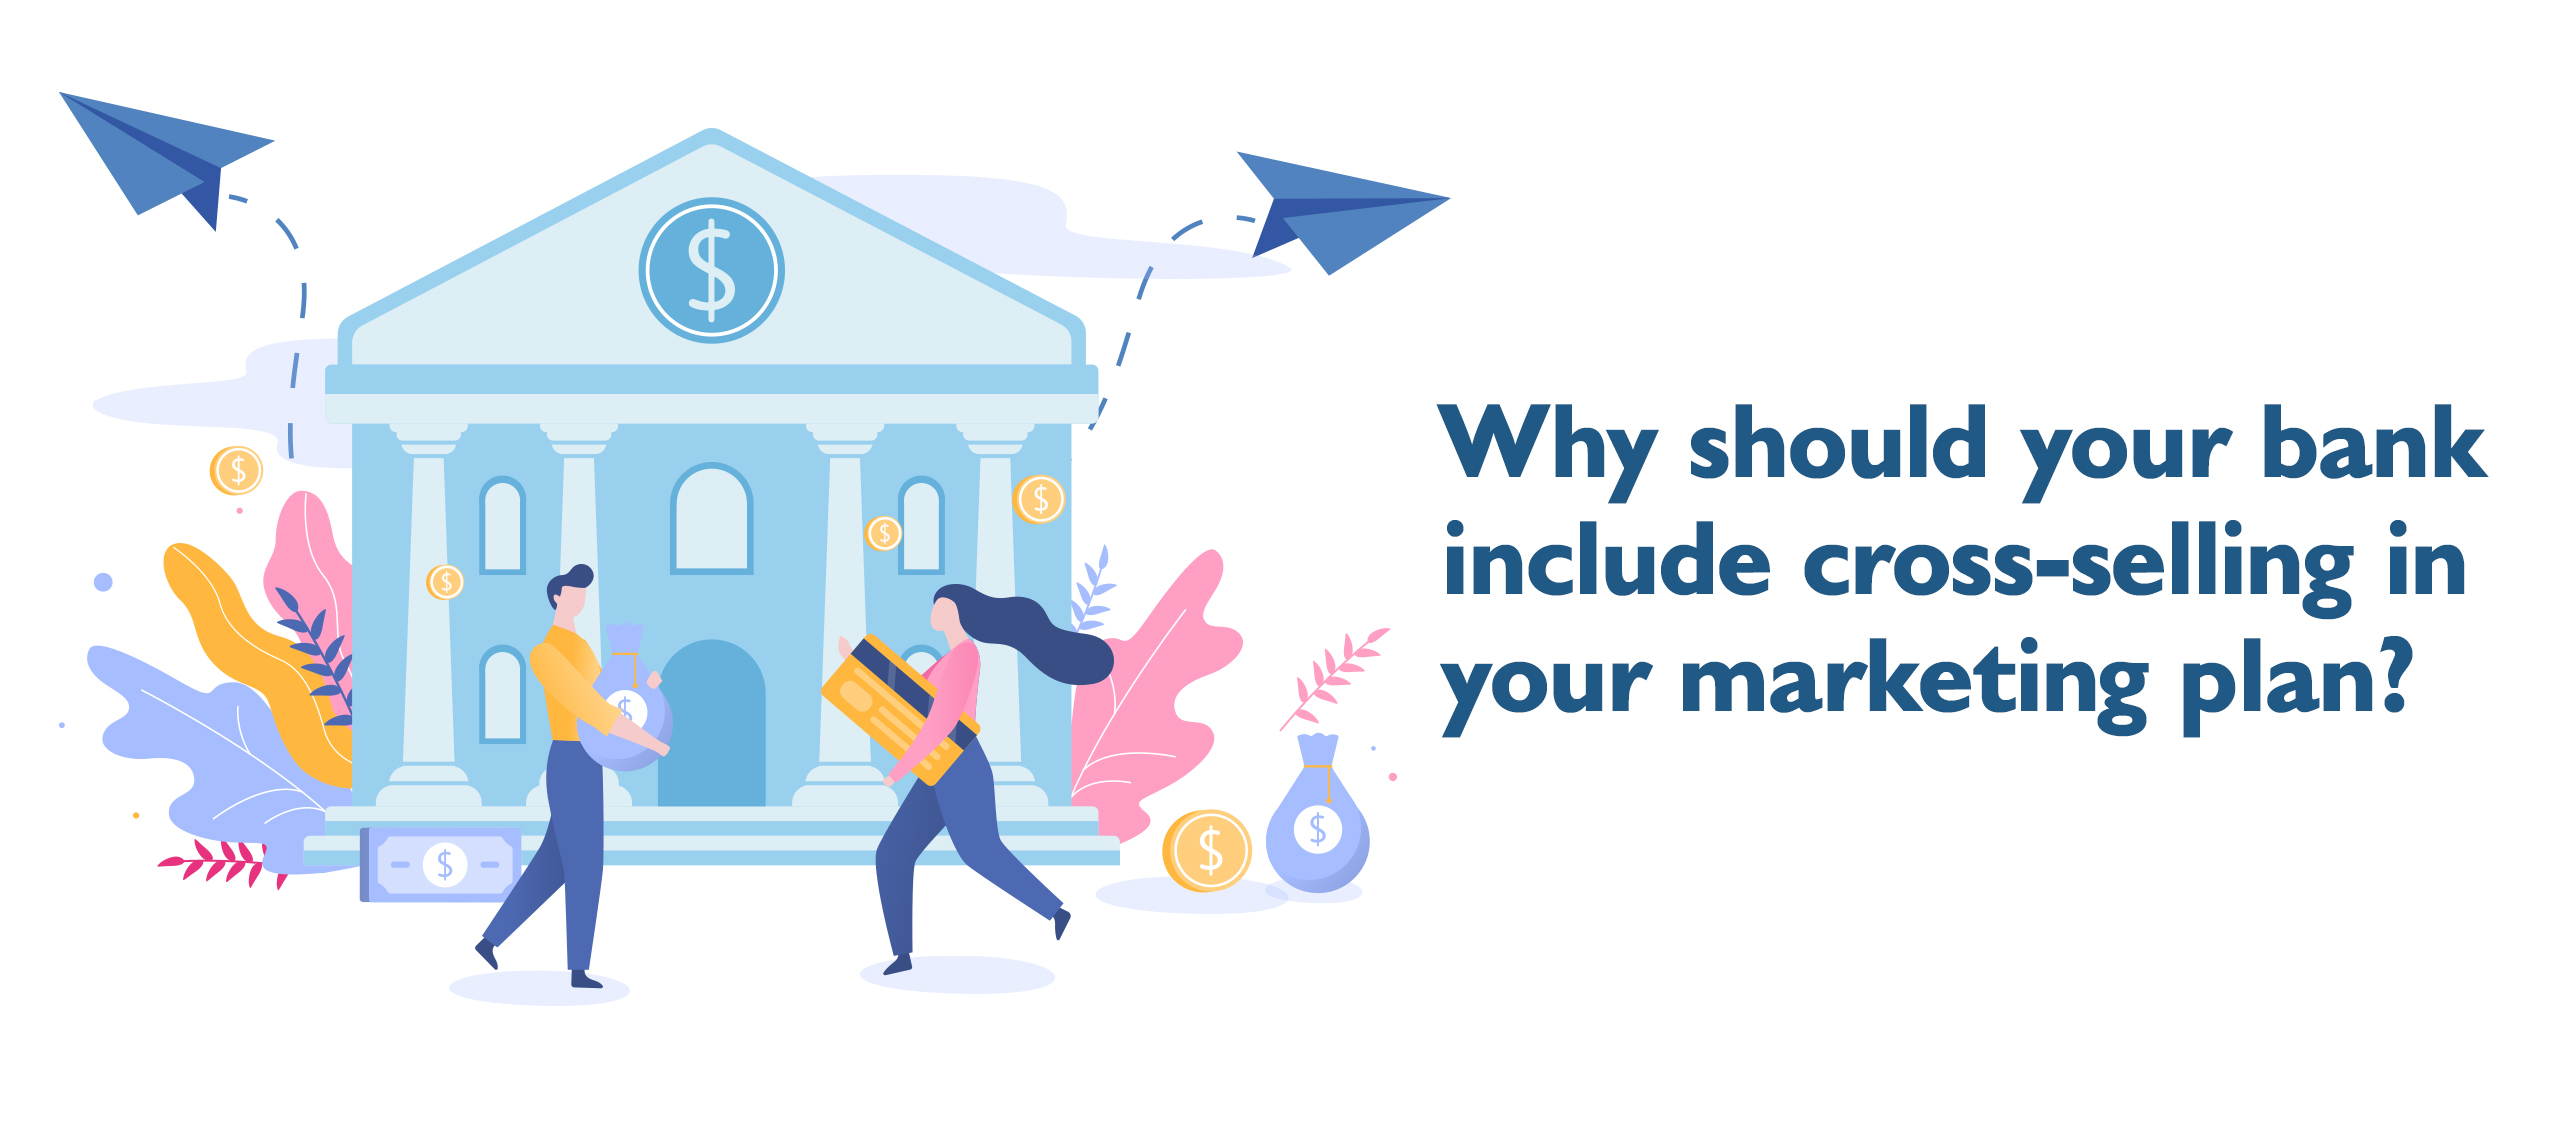 Why should your bank include cross-selling in your marketing plan?